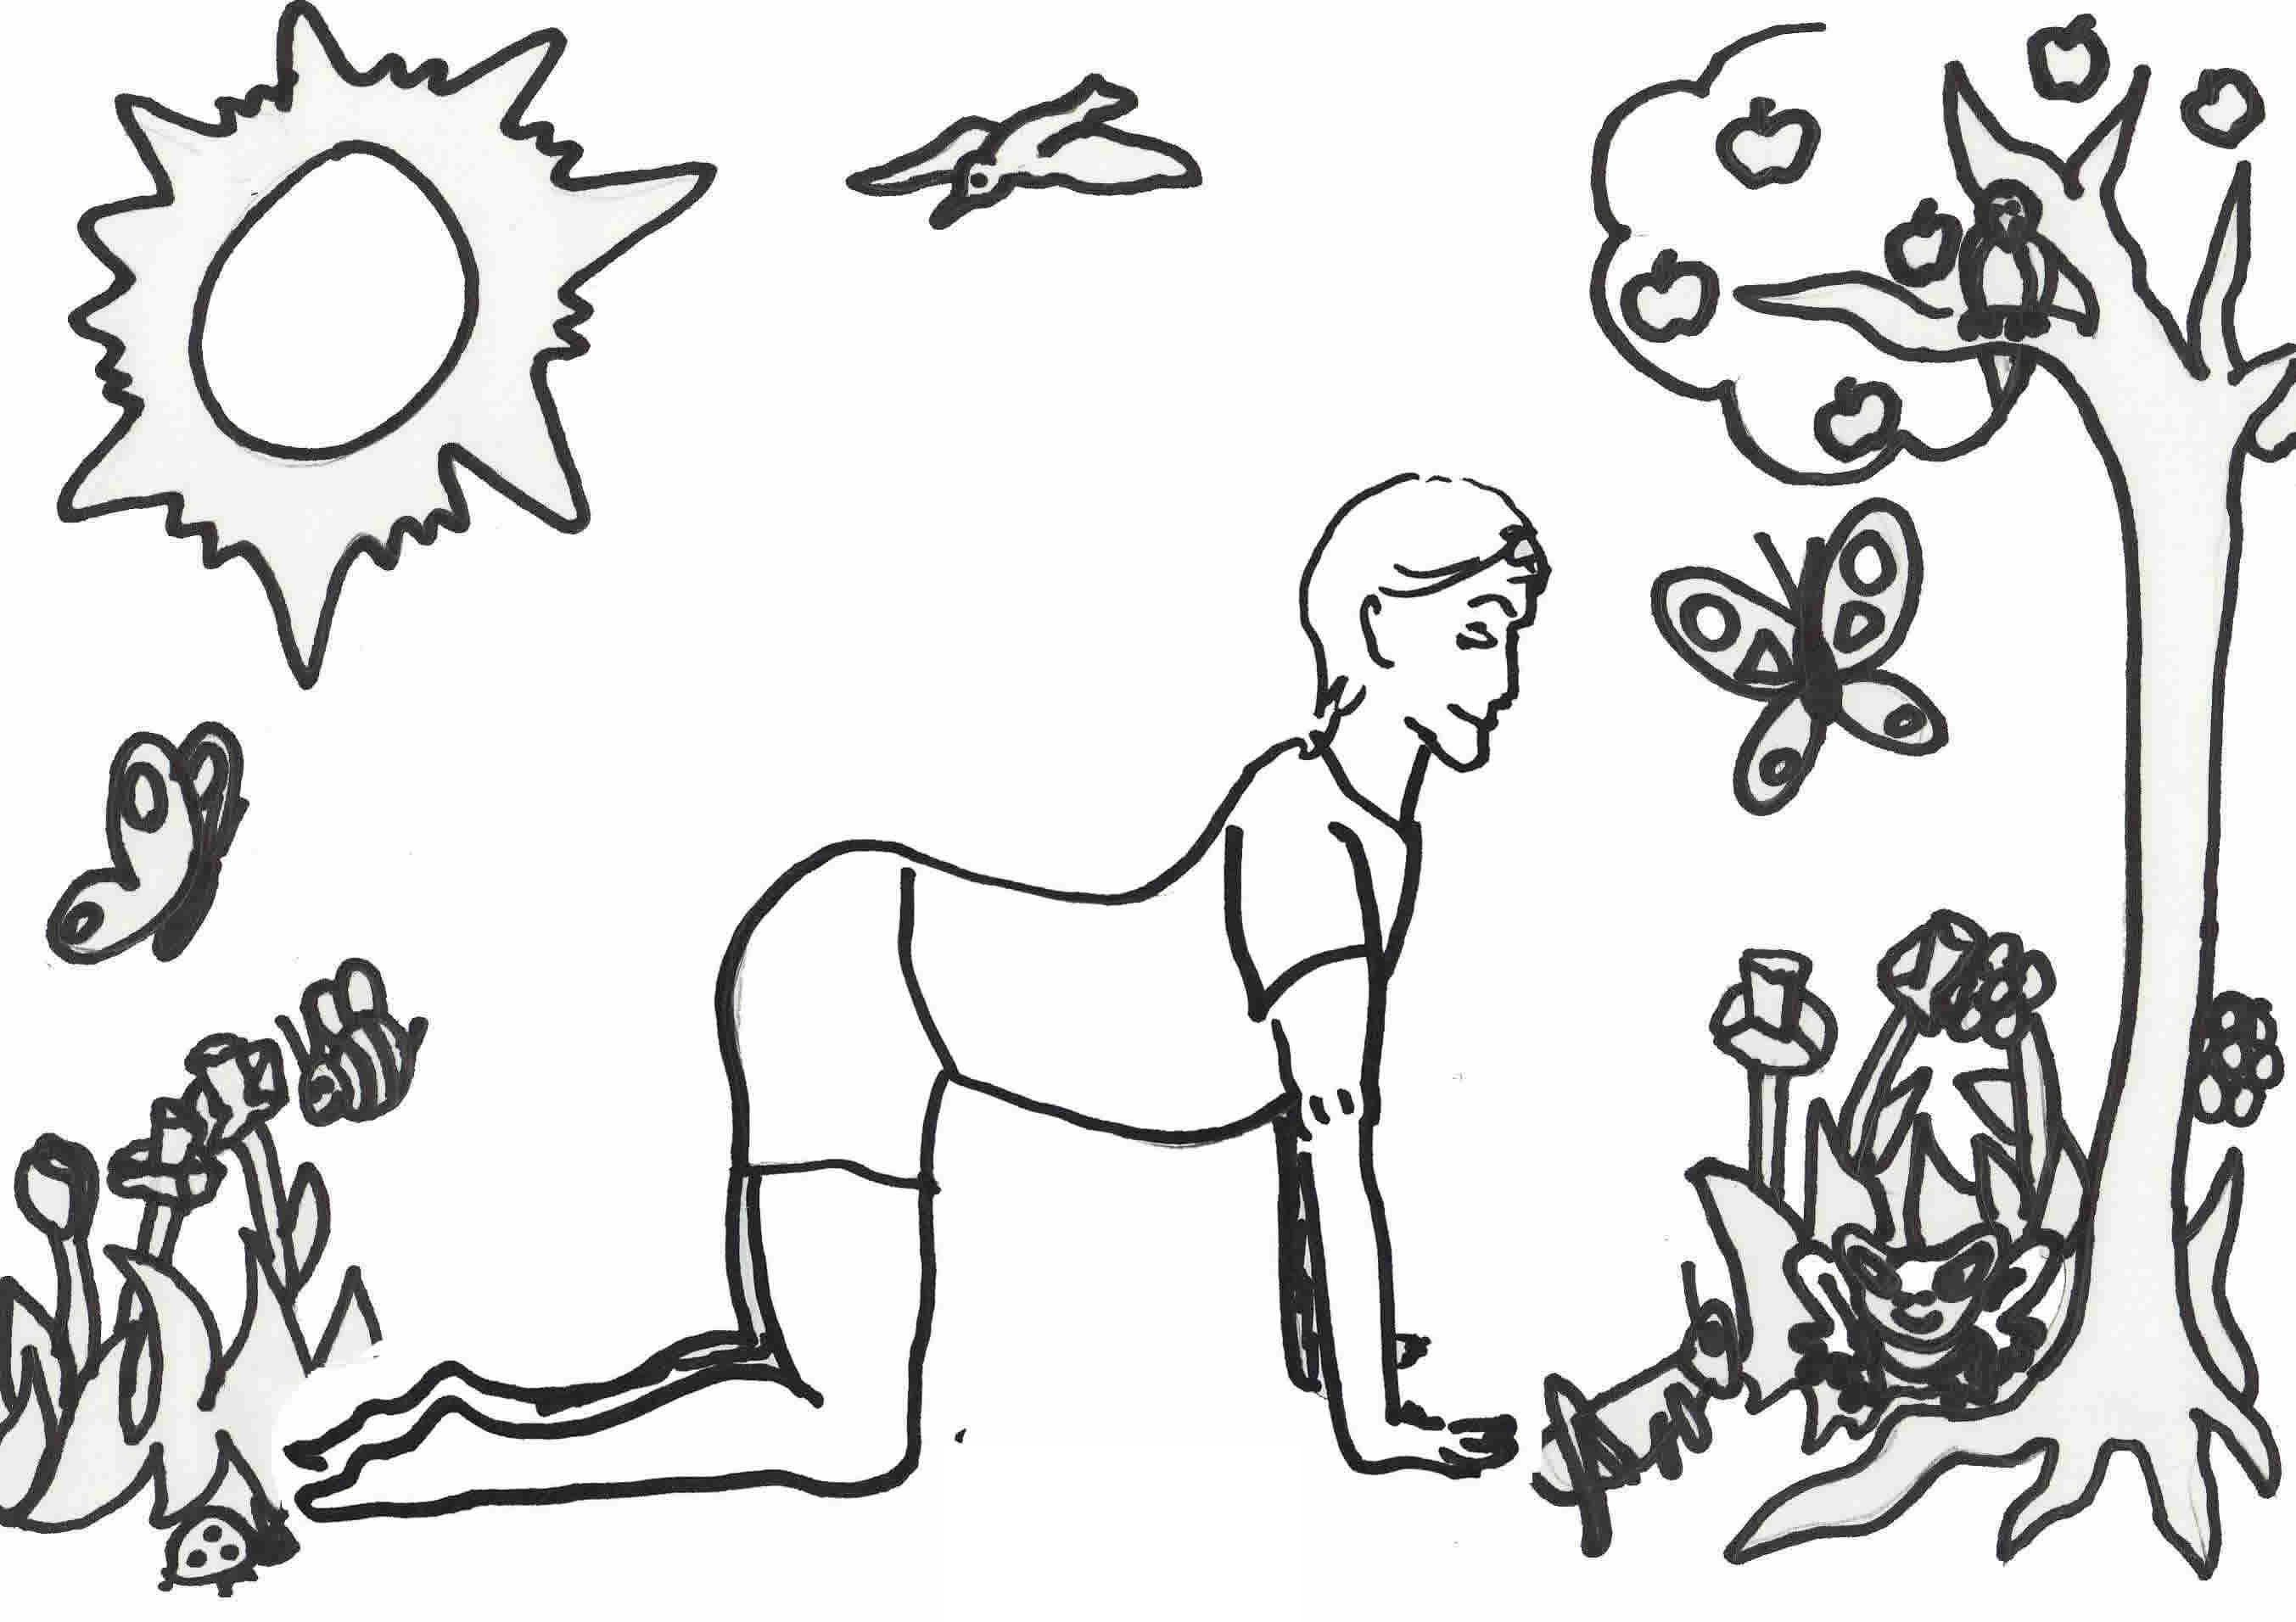 Coloring pages yoga - Yoga Coloring Pages For Kids 4 Jpg